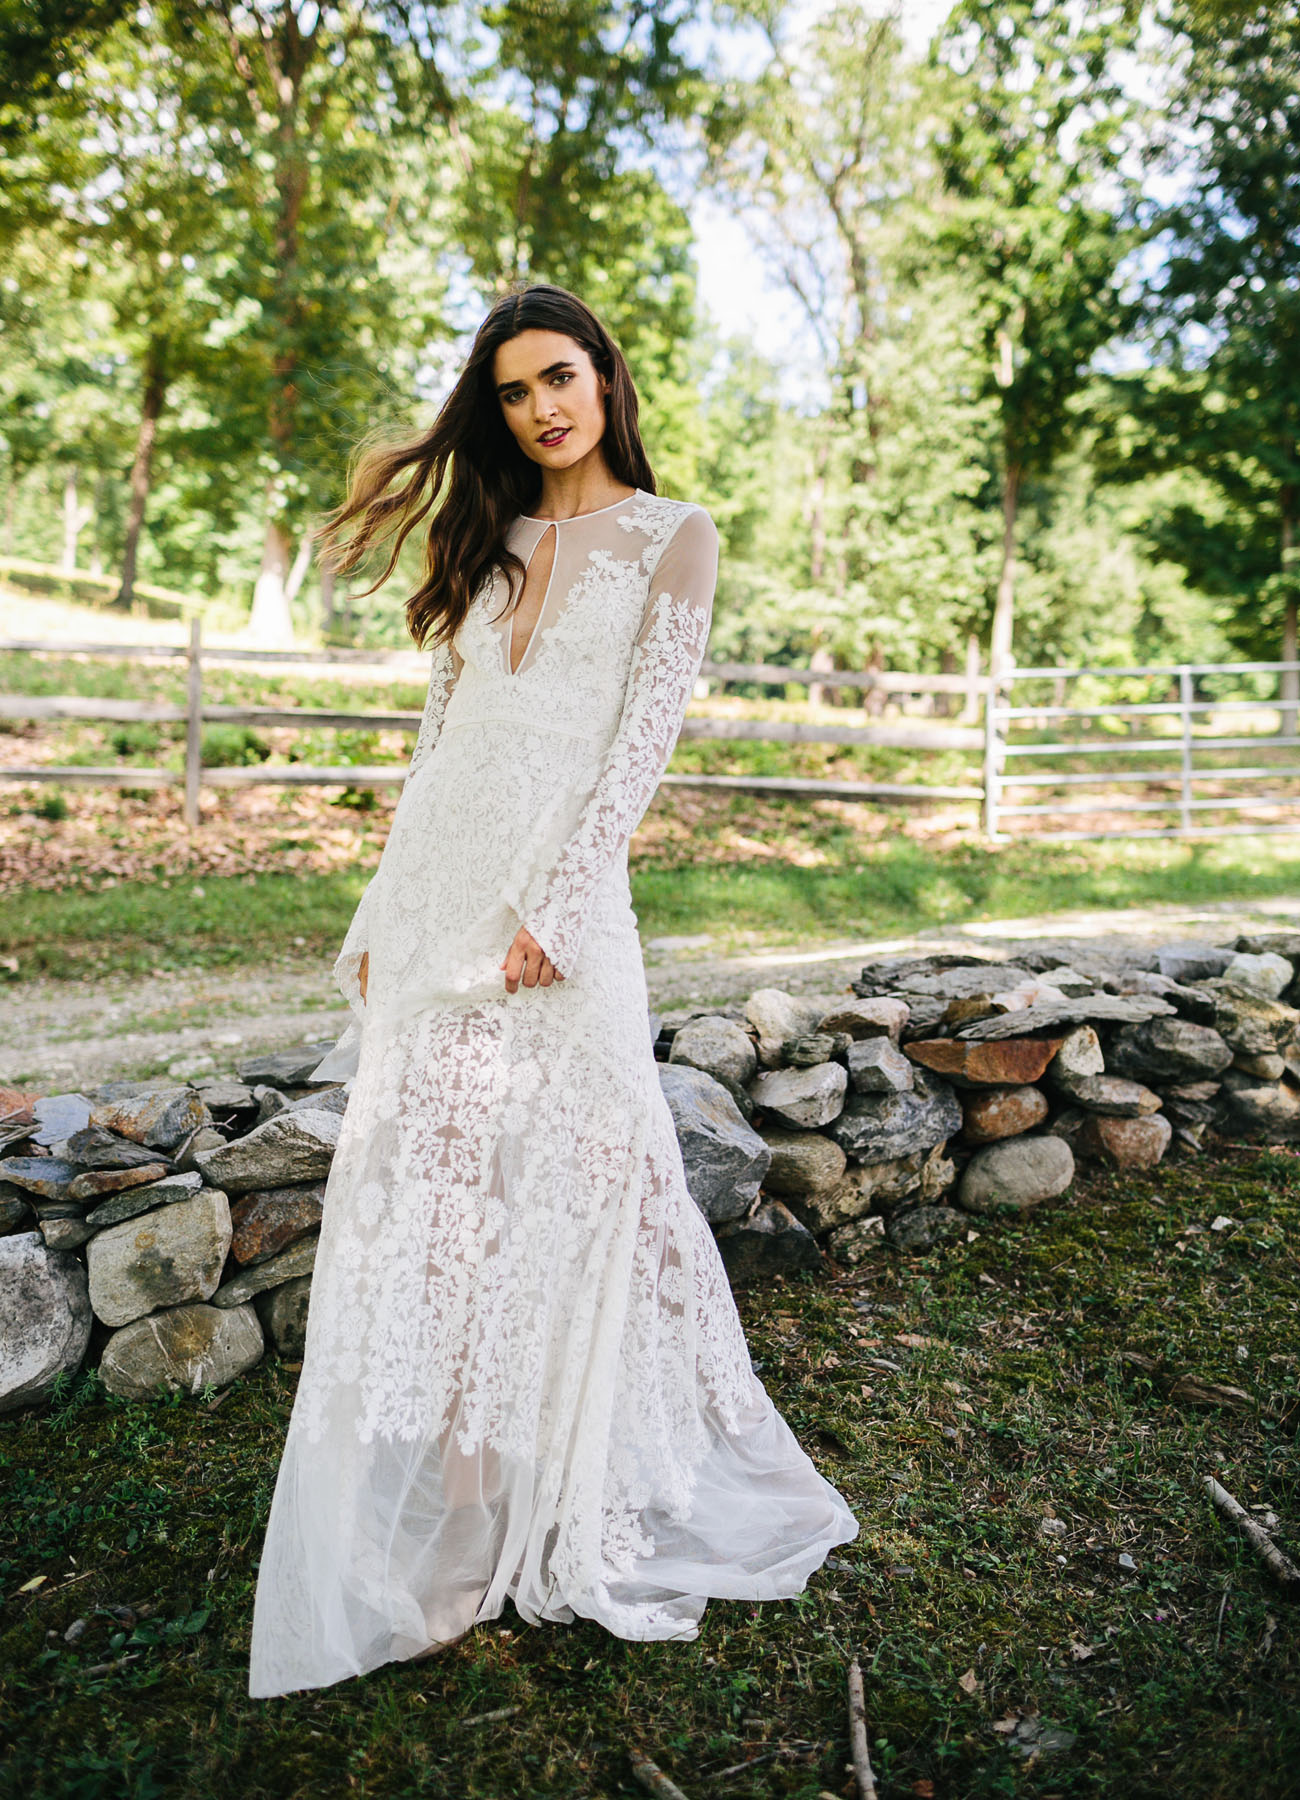 Vintage Wedding Dresses Los Angeles : Vintage wedding dress is what you choose the boho dresses from